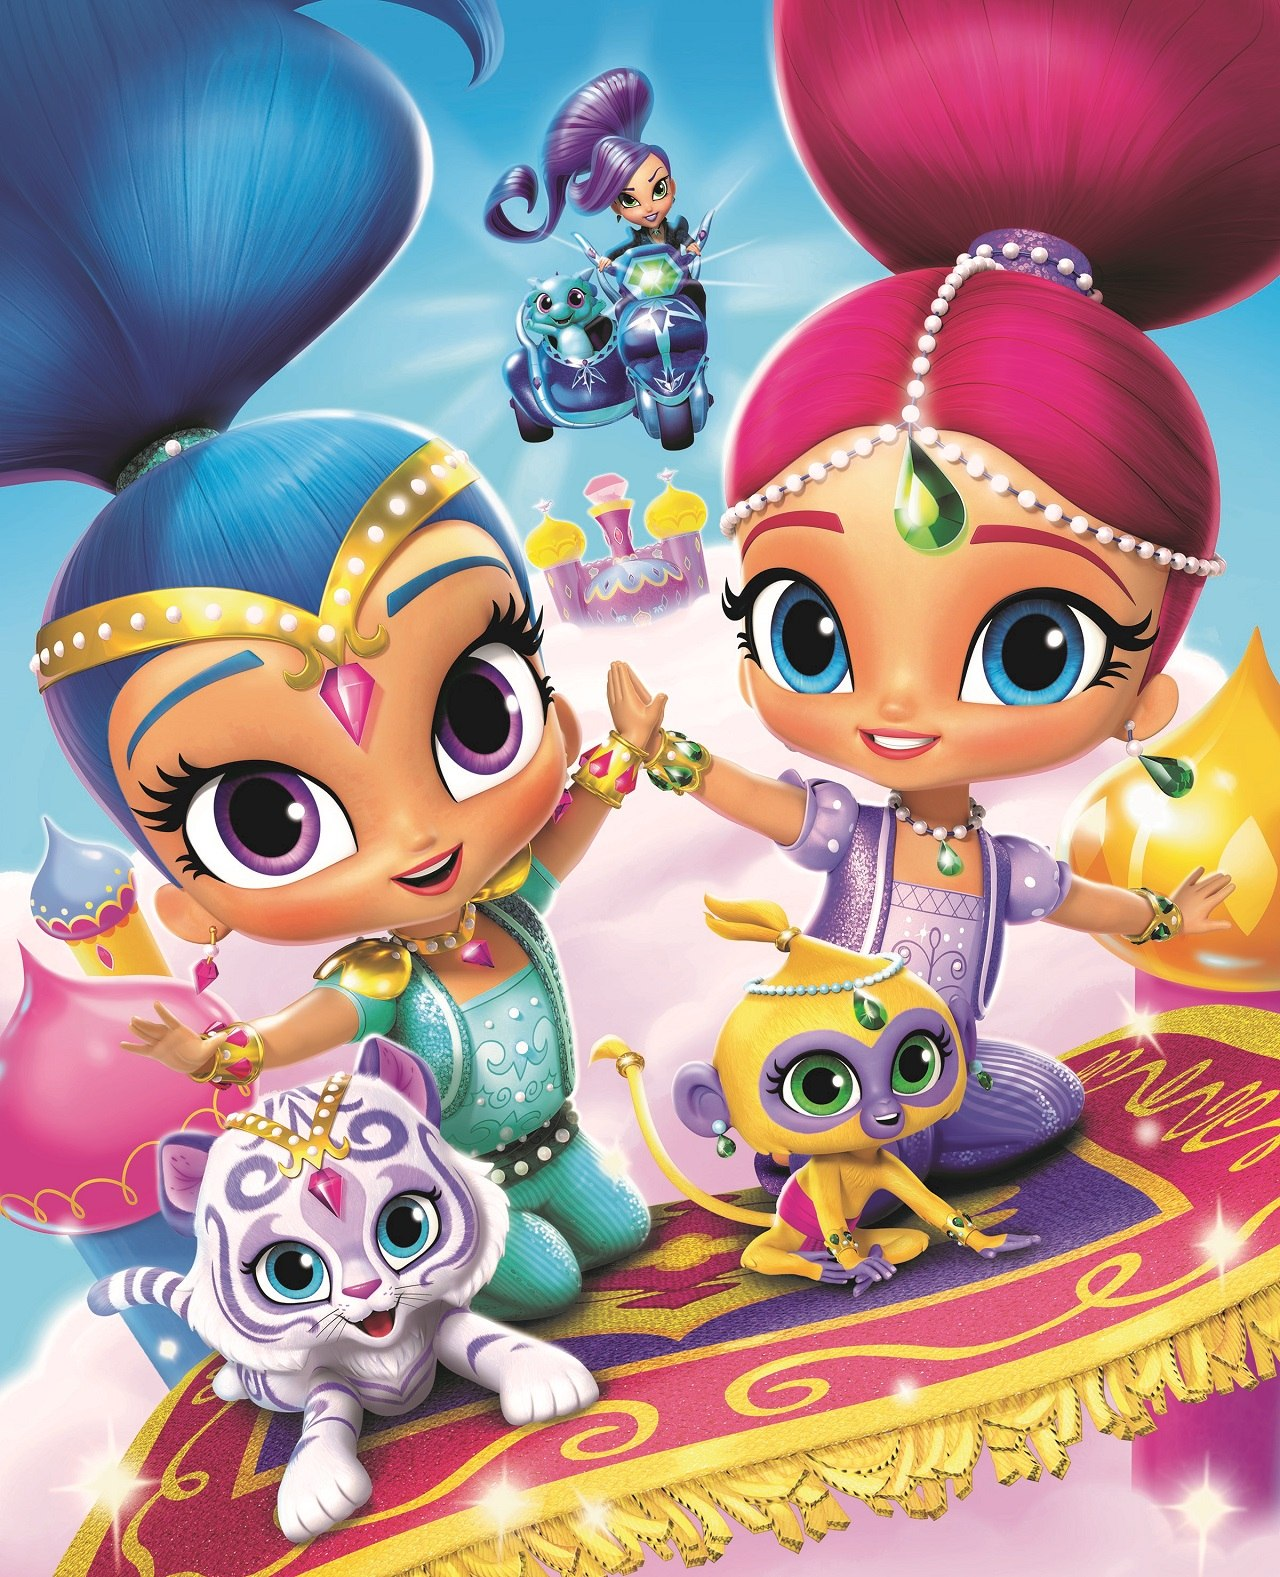 Shimmer And Shine Magical Genie Games Free Download : shimmer, shine, magical, genie, games, download, Nickelodeon, Launching, Season, 'Shimmer, Shine', Animation, World, Network